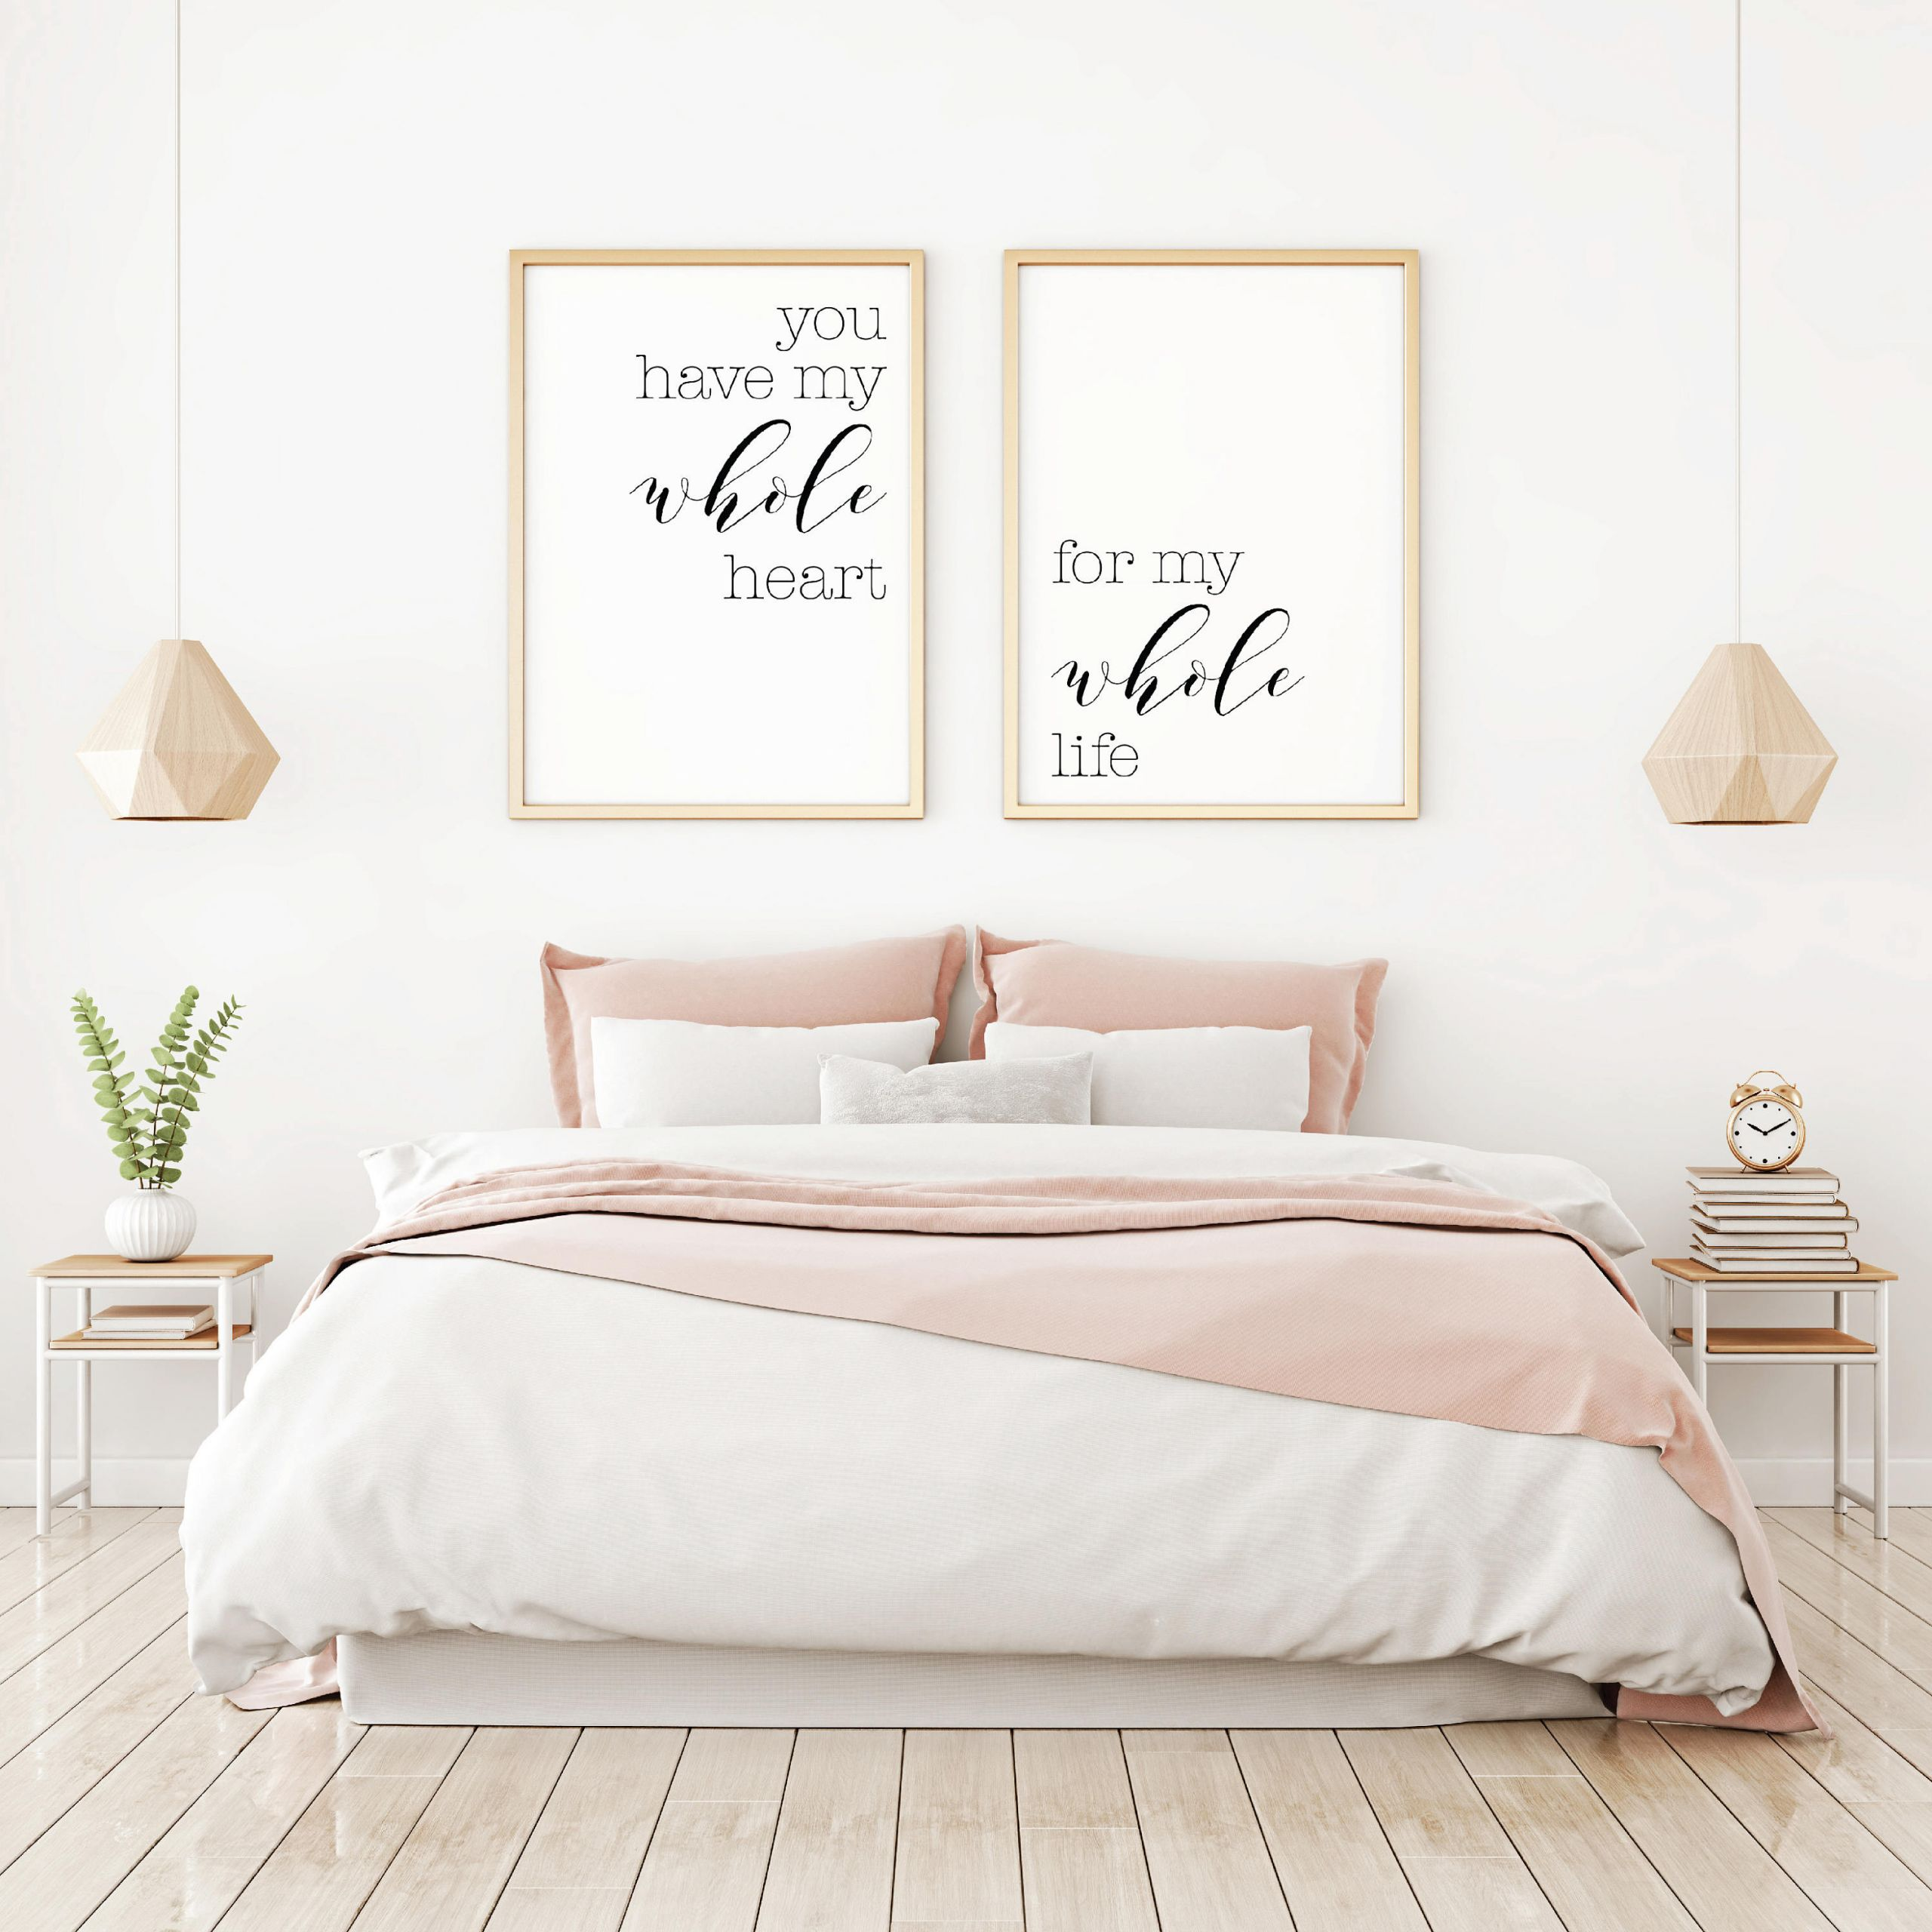 Wall Prints For Bedroom  Bedroom Wall Decor Ideas Home Decor Wall Art Master